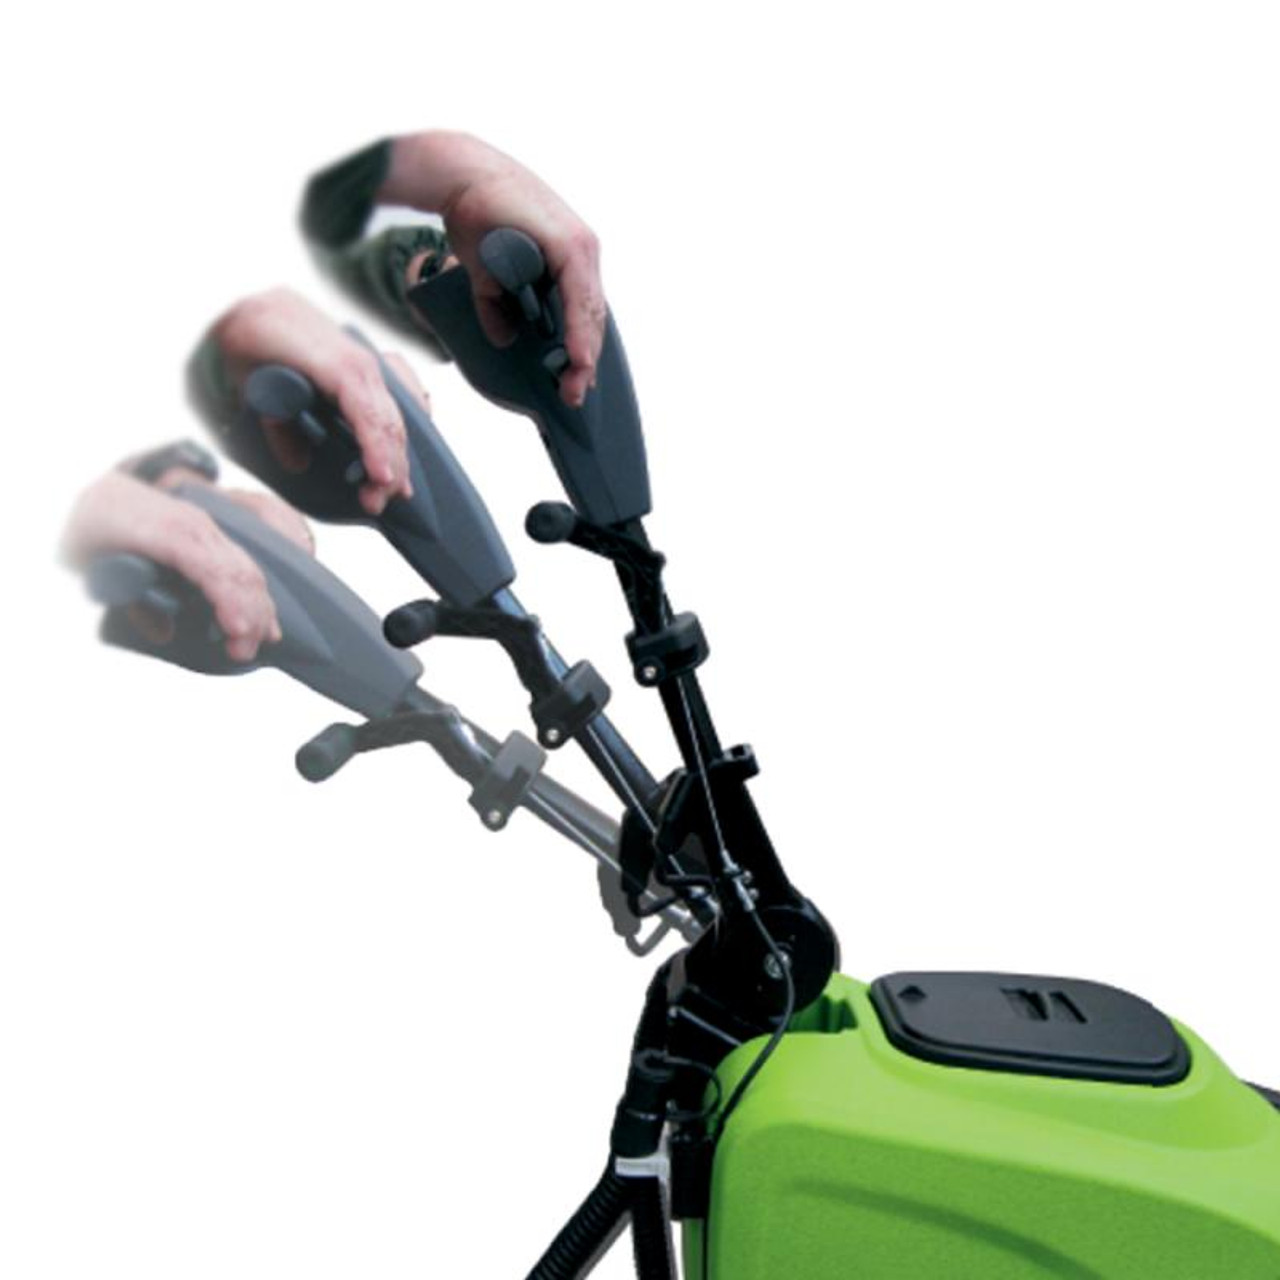 Height adjustable handle for superior comfort when using this autoscrubber.